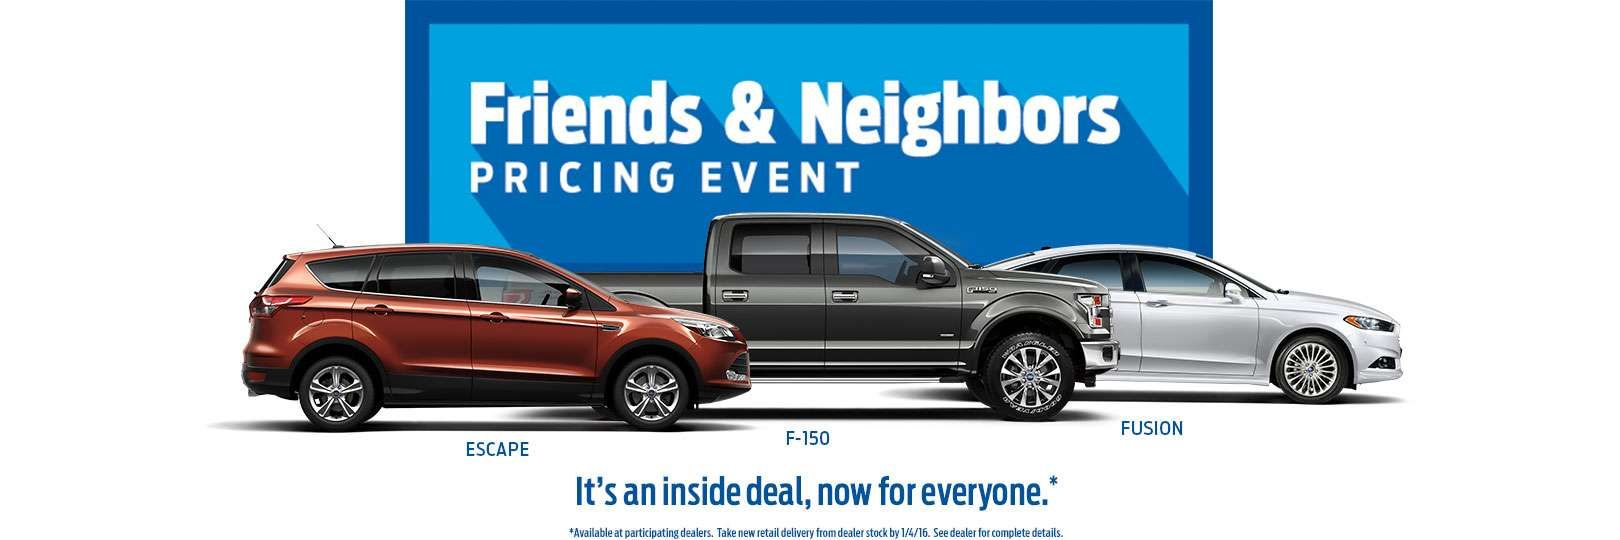 Friends Neighbors Specials on new autos from Fox Ford